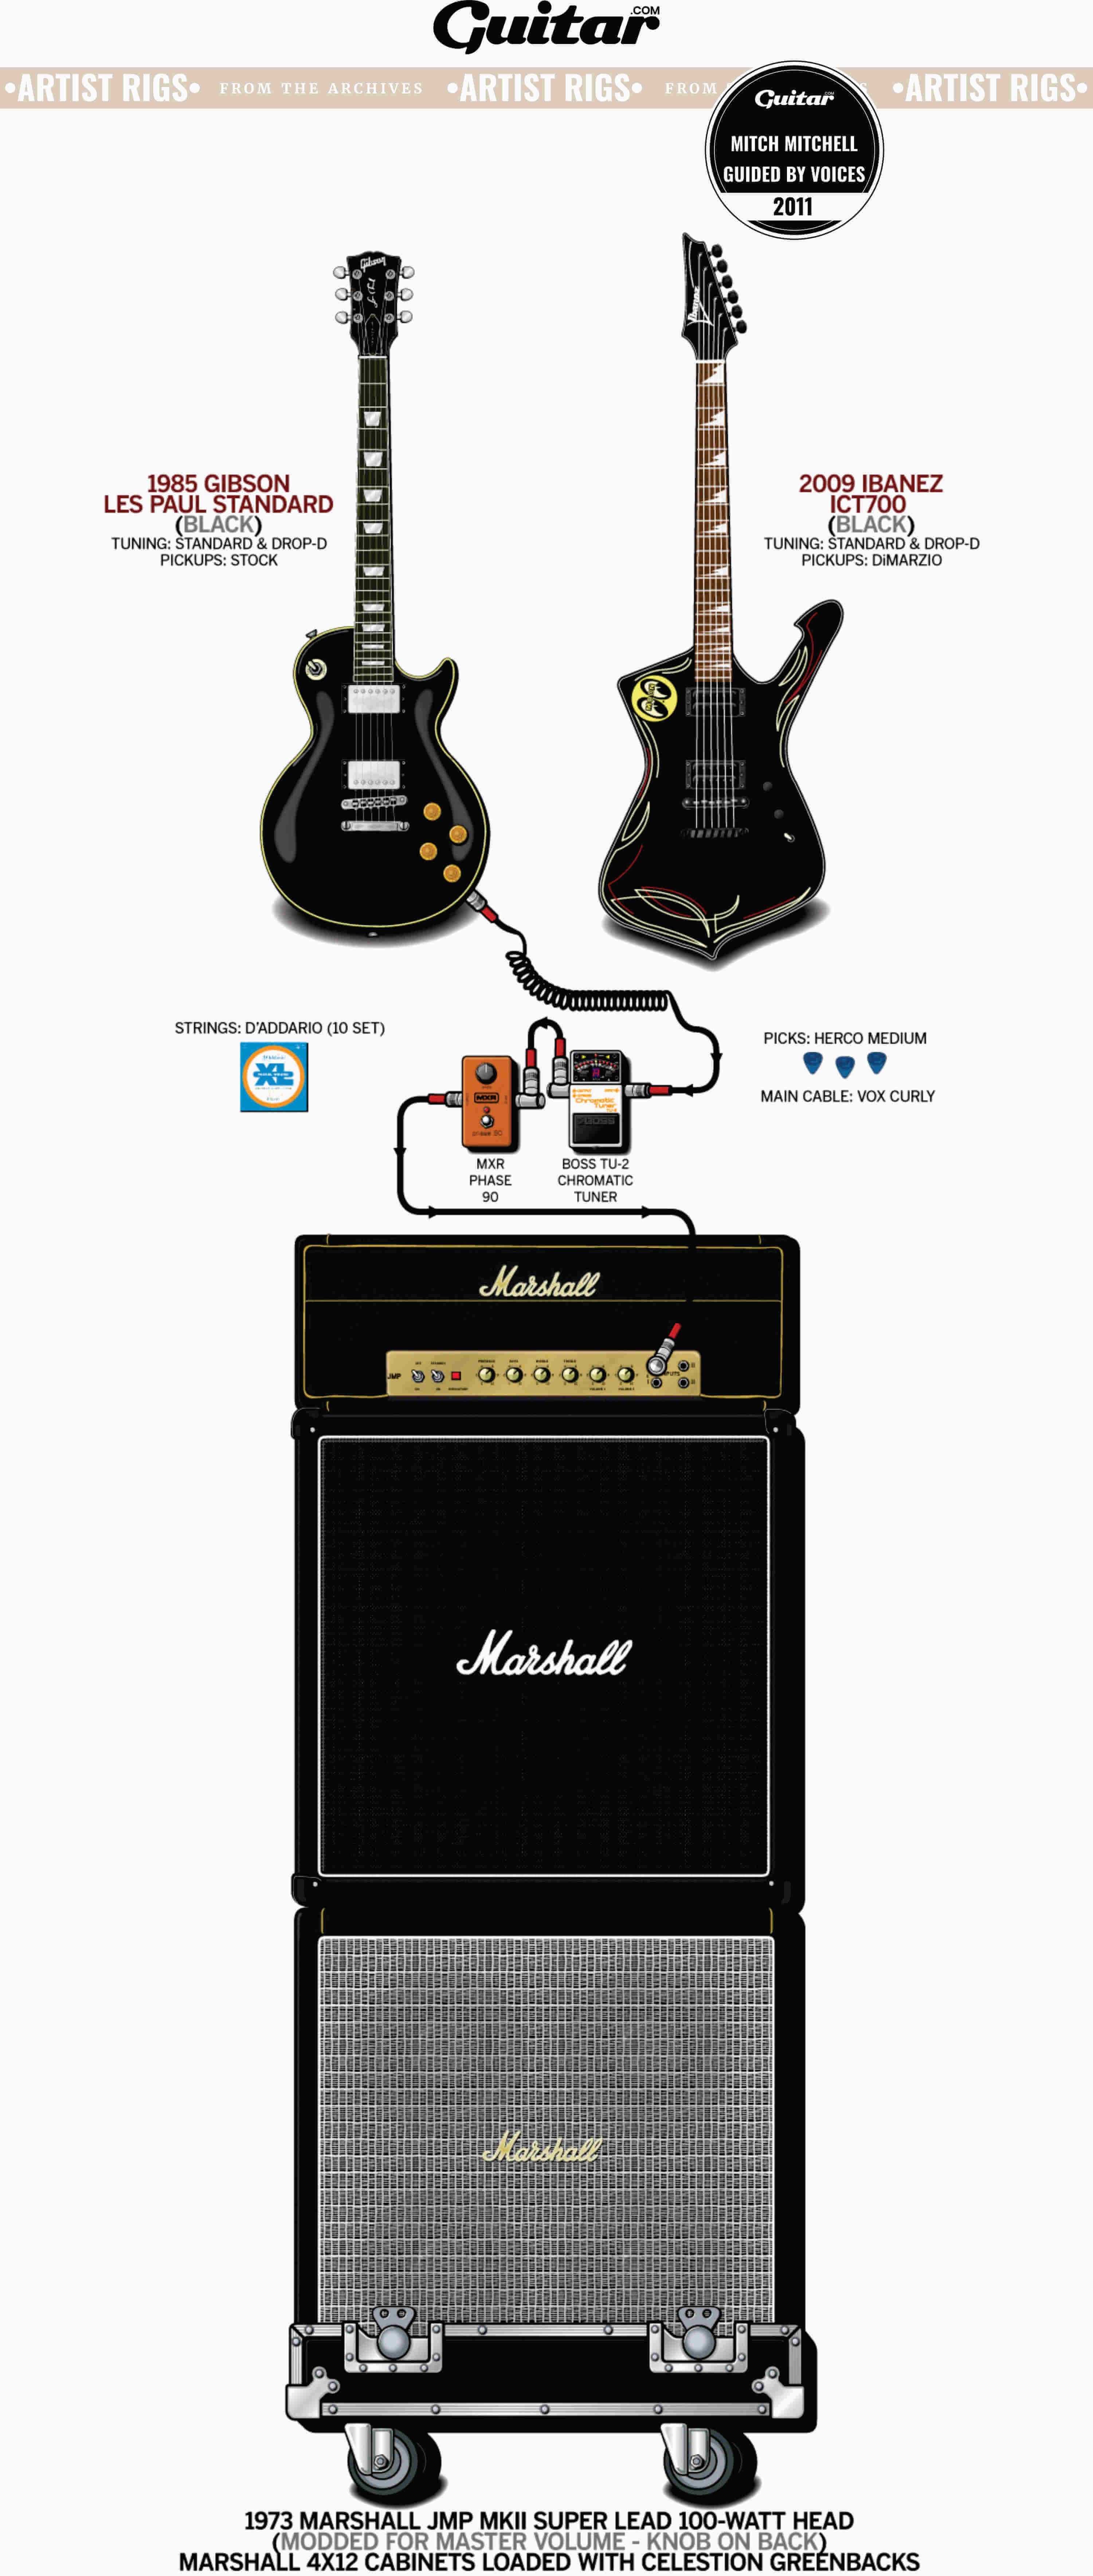 Rig Diagram: Mitch Mitchell, Guided By Voices (2011)